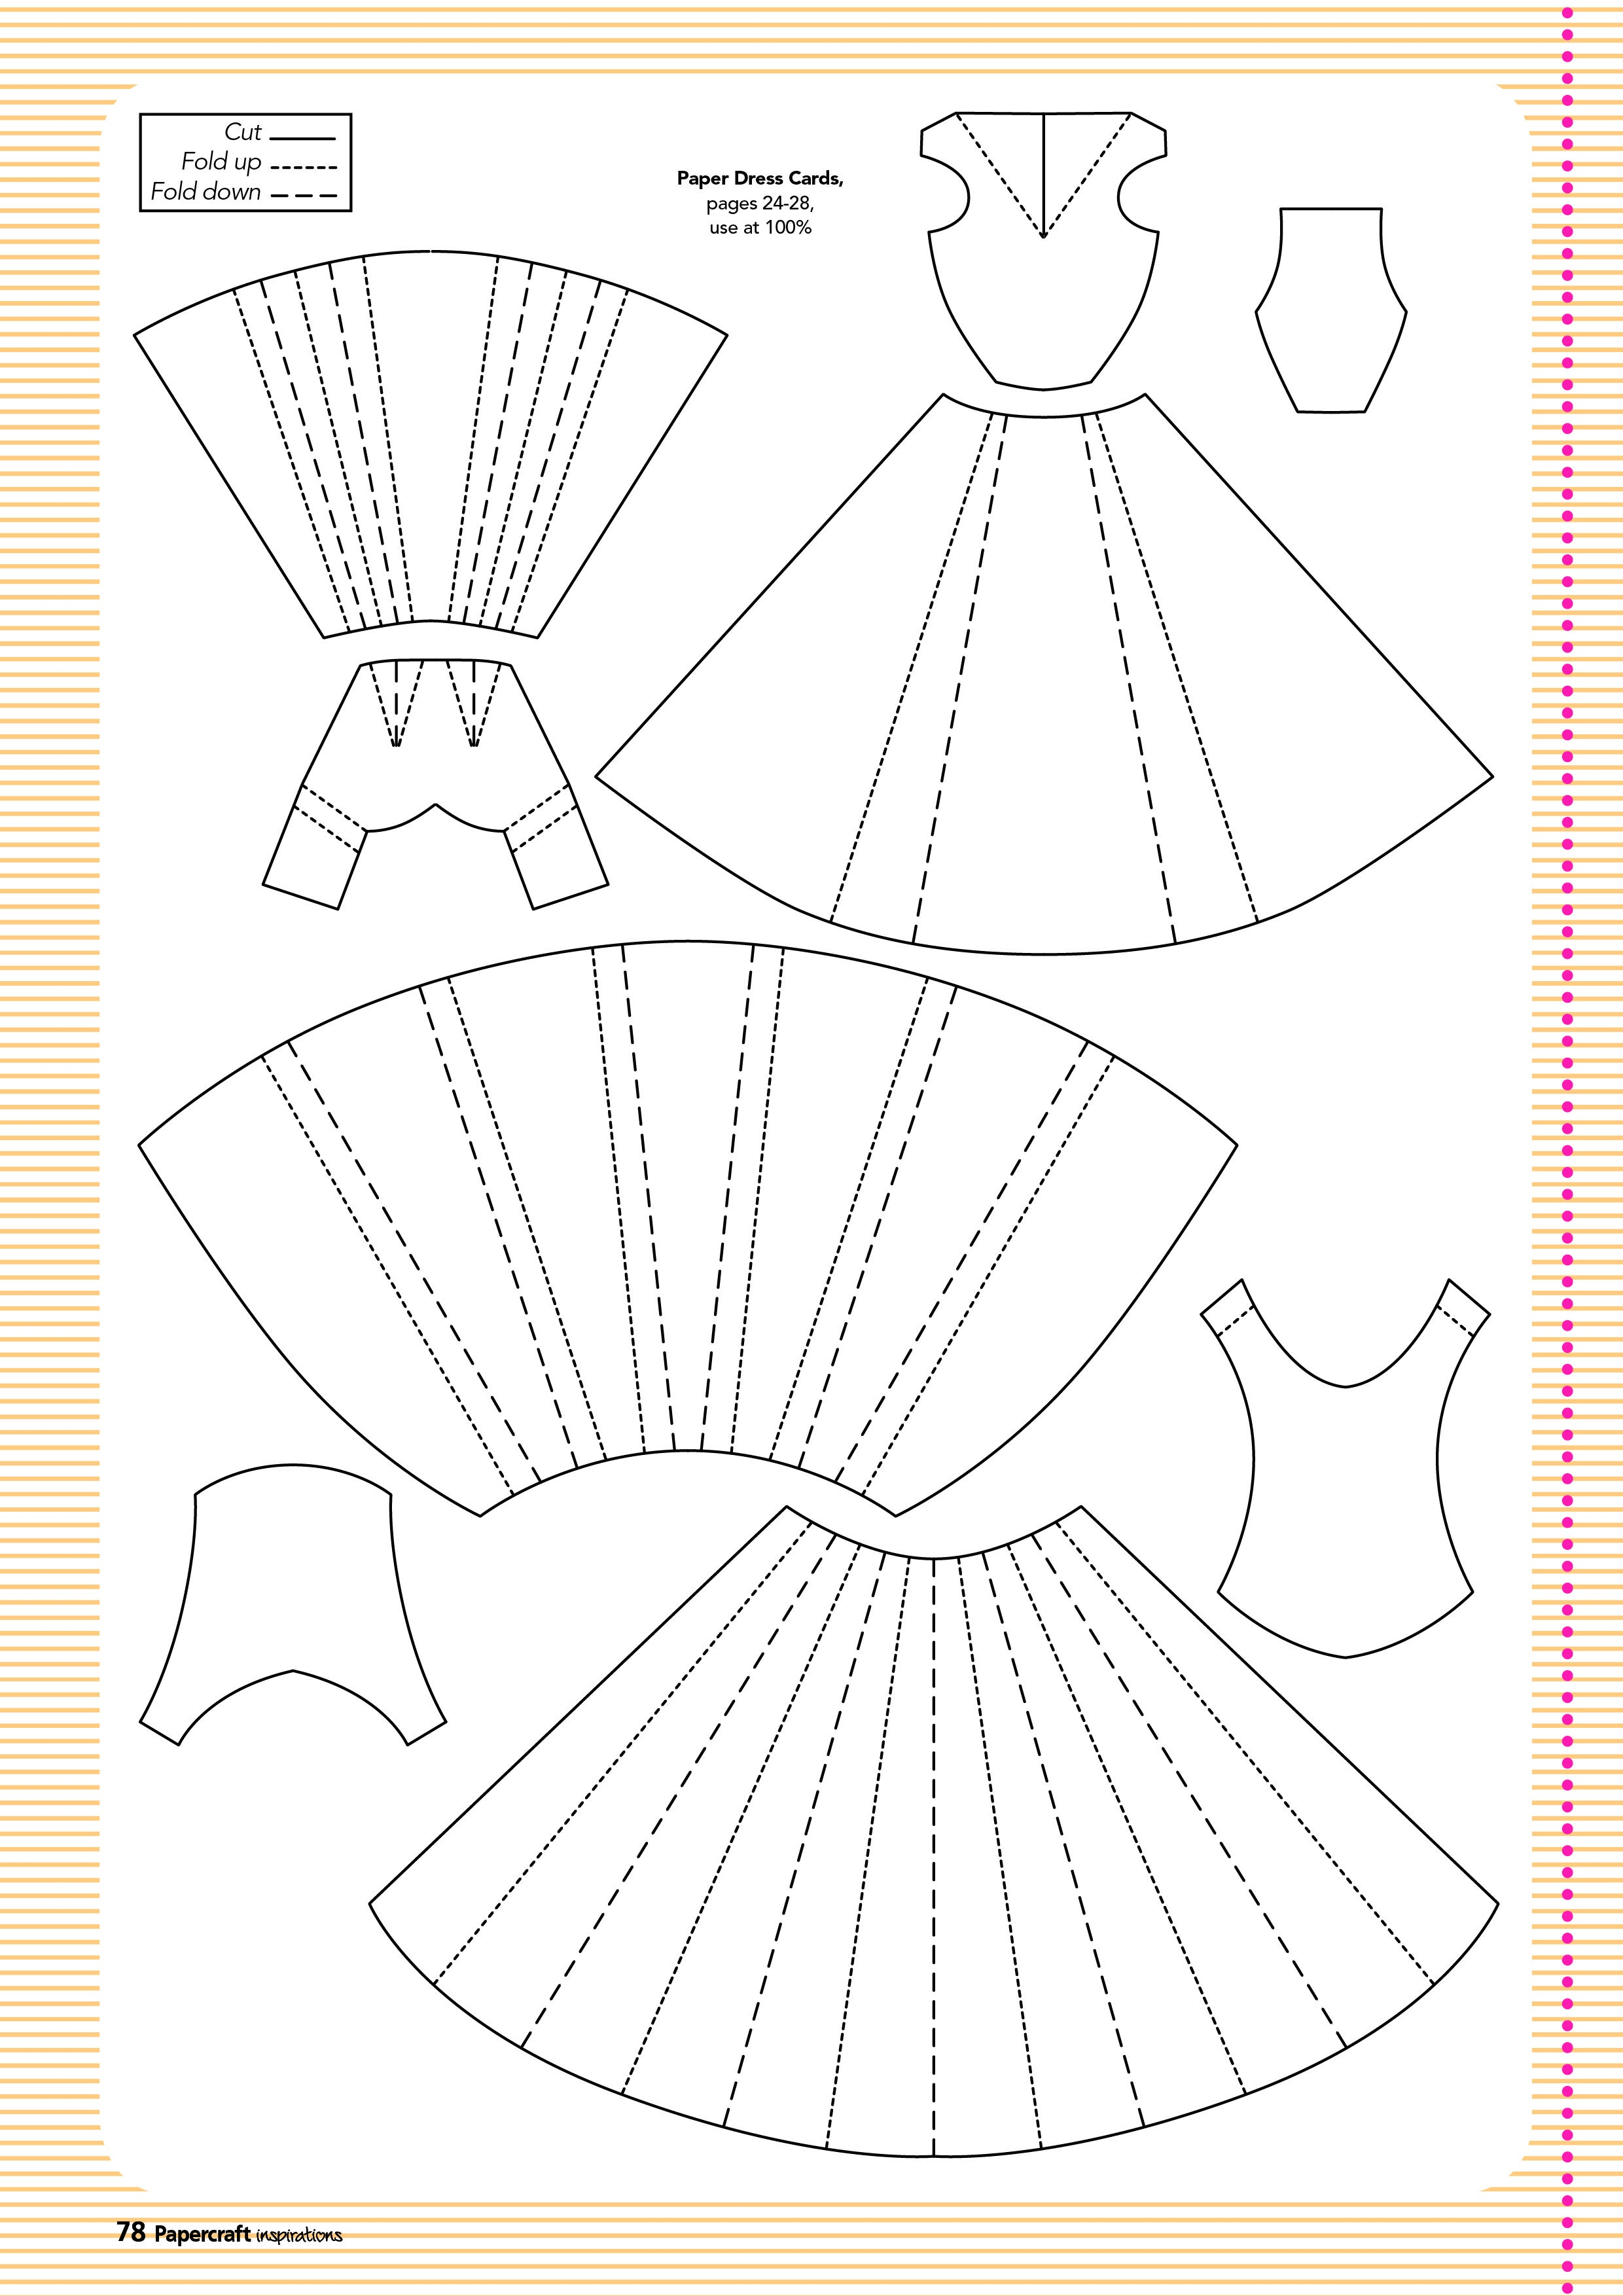 Free Templates From Papercraft Inspirations 129   Card Design - Free Card Making Templates Printable